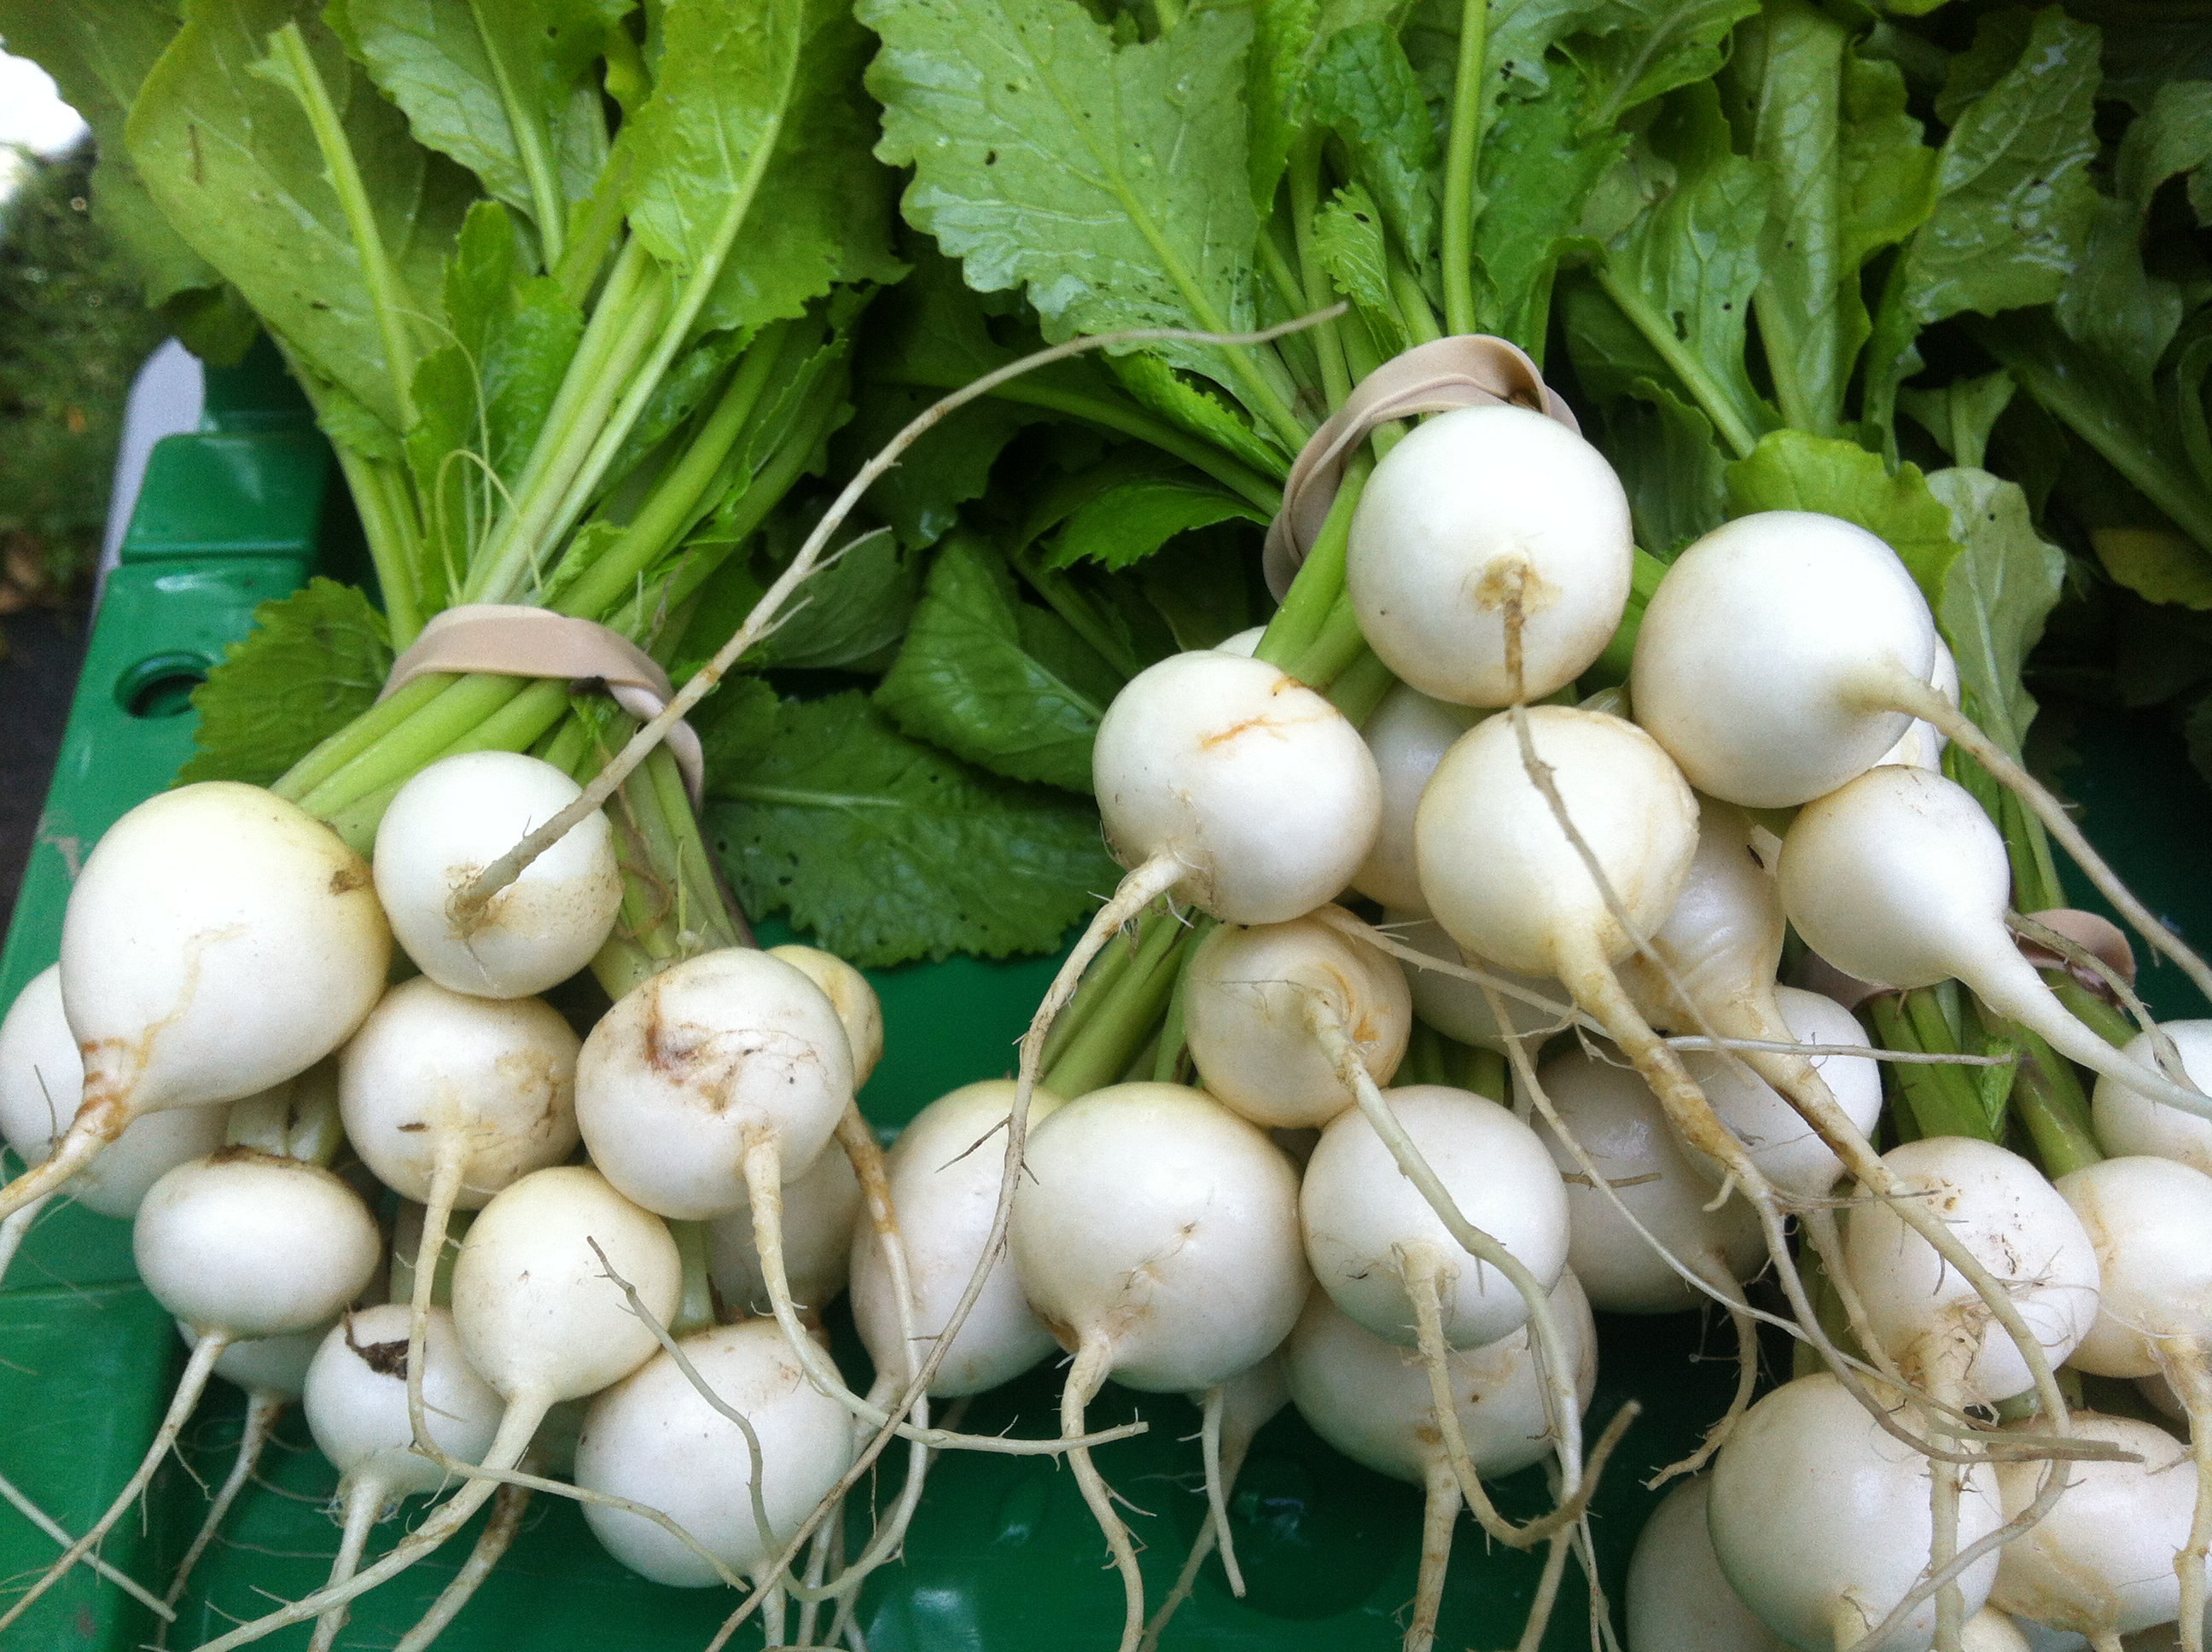 Those Beautiful Turnips - Are They Animal Food?